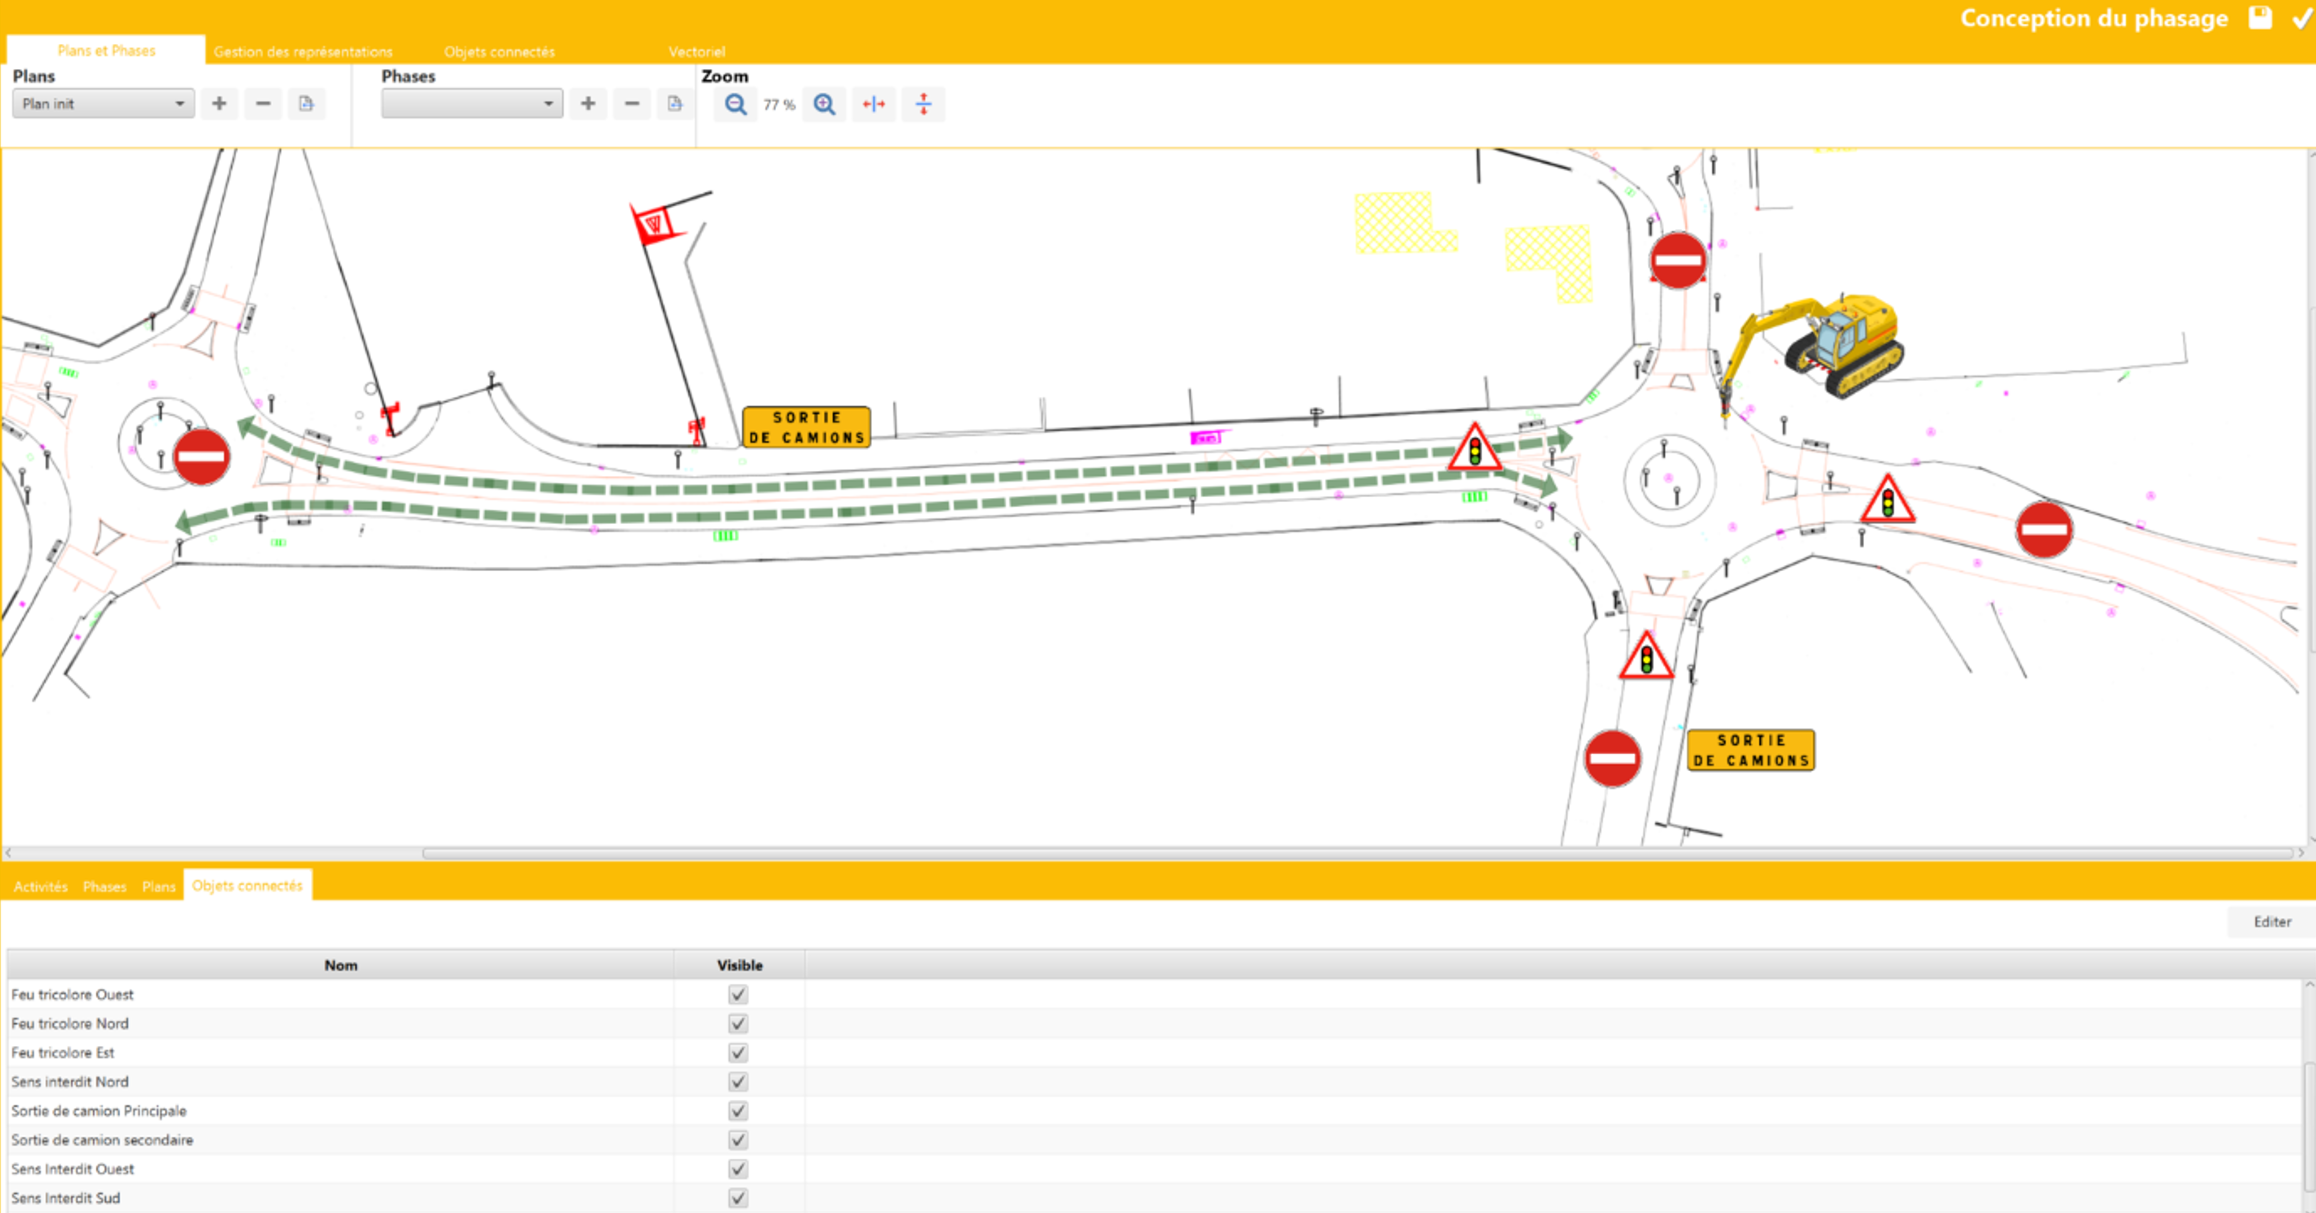 Conception Phasage sur Phase Manager